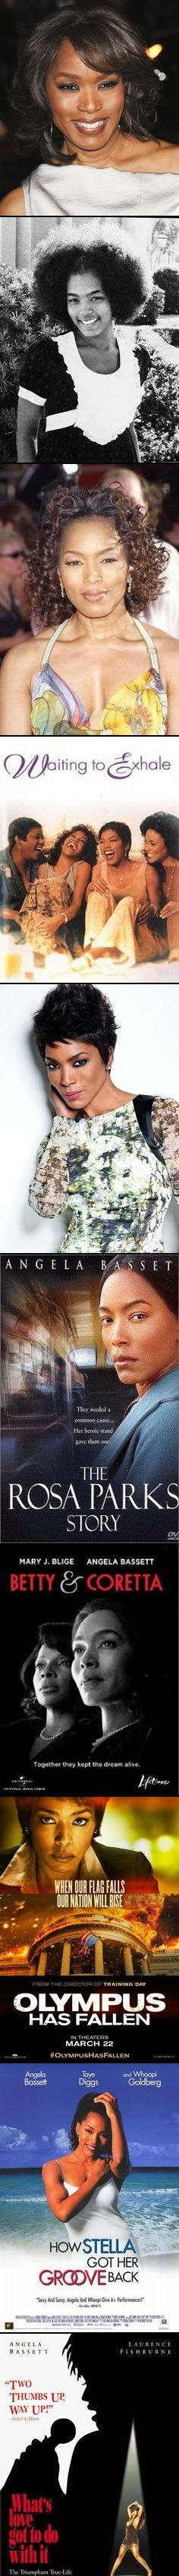 Angela Bassett attended Yale University, received her B.A. degree in African-American studies in 1980. In 1983, she earned a Master of Fine Arts degree from  Yale School of Drama.She has become well known for her biographical film roles portraying real-life women in African-American culture.